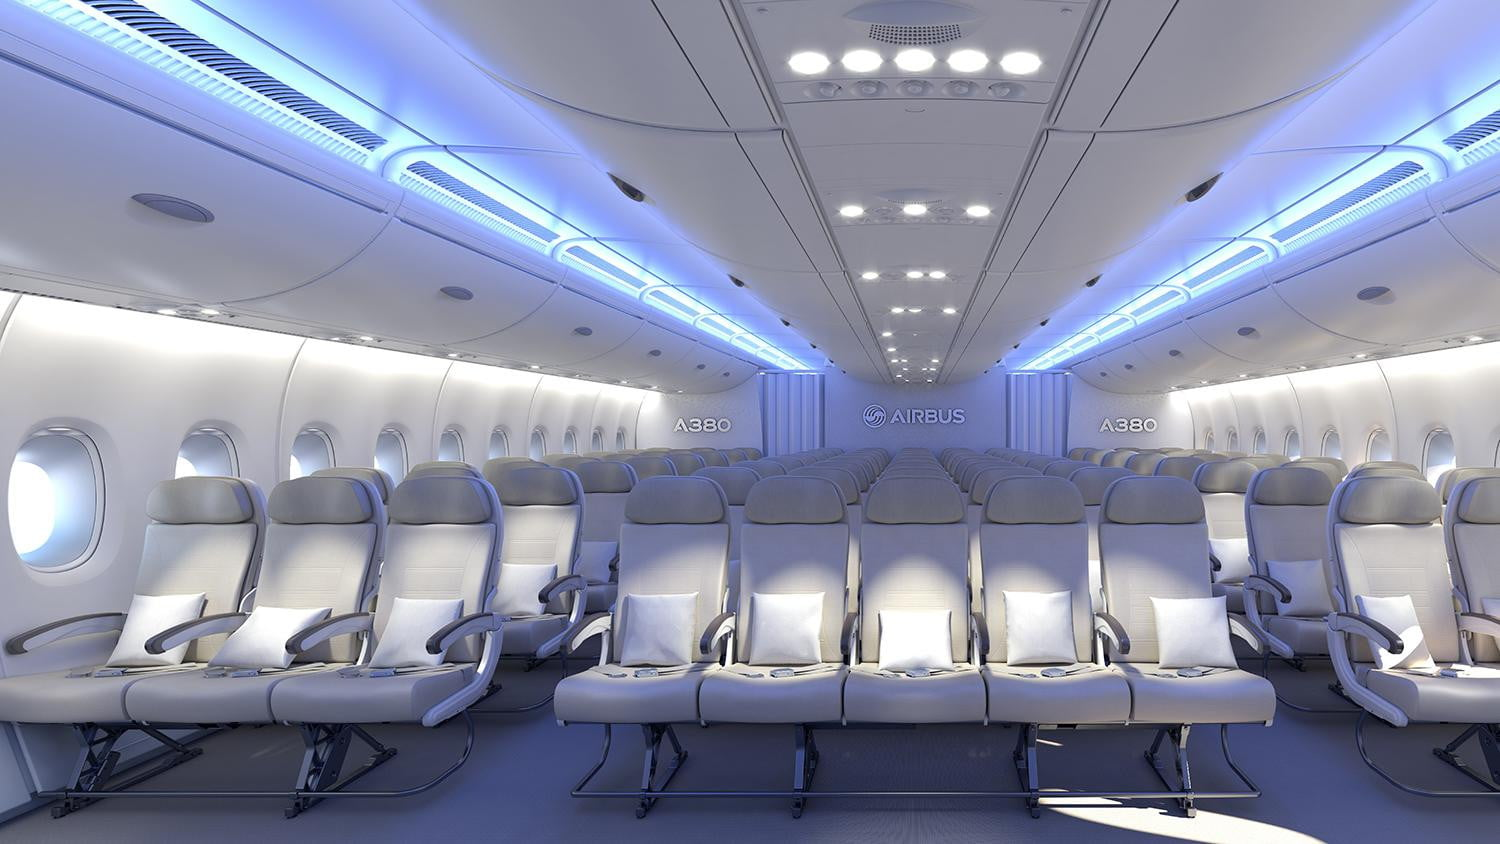 New Smaller Coach Seat Designs For Planes Digital Trends